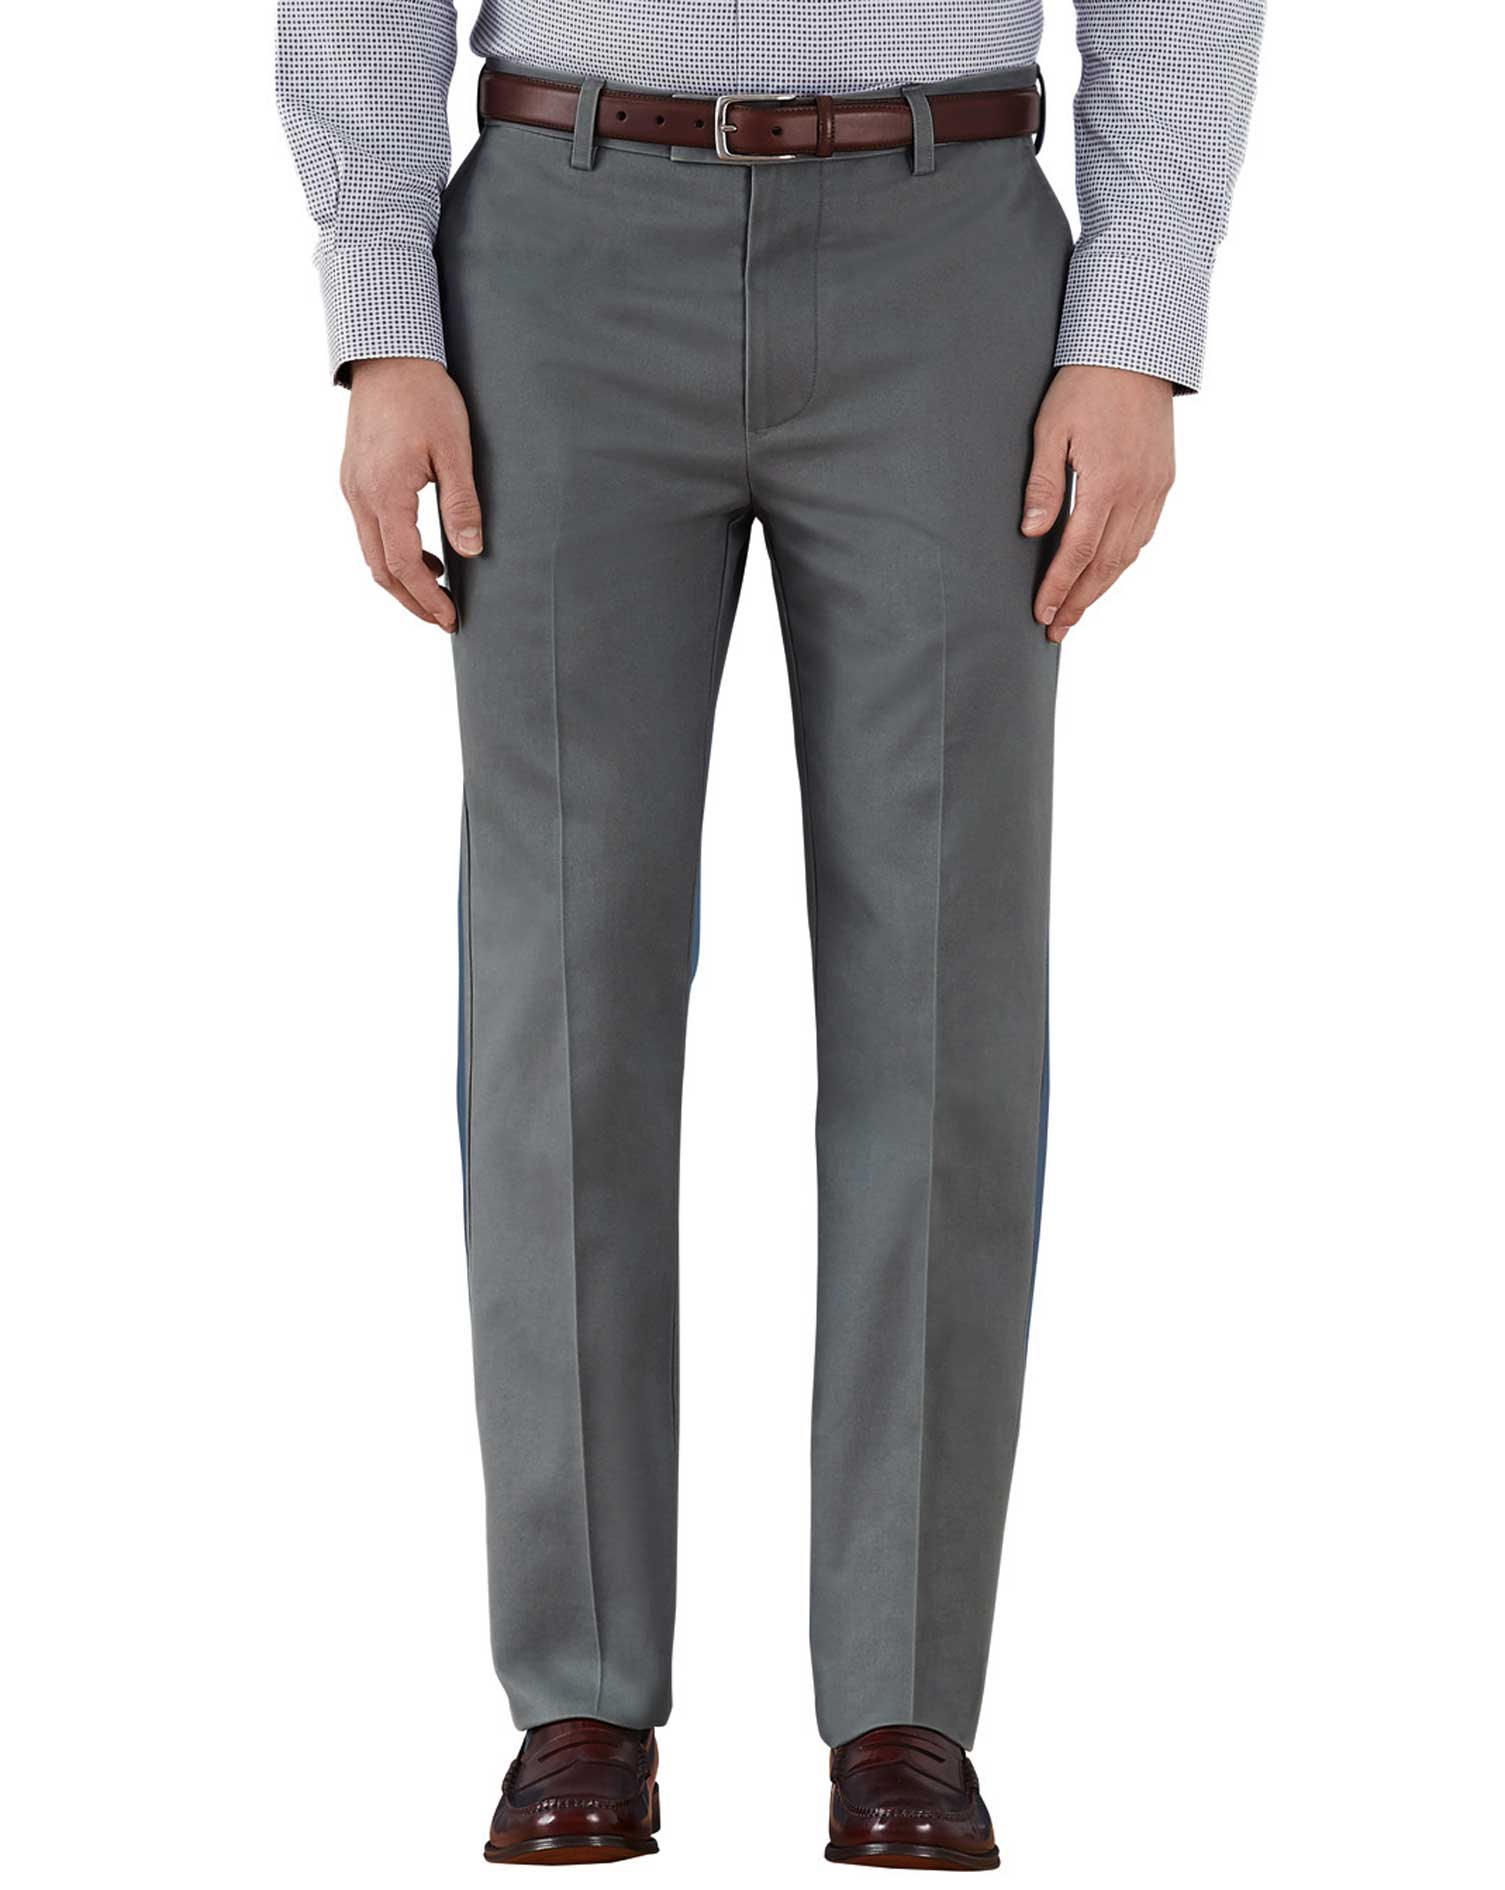 Grey Slim Fit Flat Front Non-Iron Cotton Chino Trousers Size W42 L29 by Charles Tyrwhitt